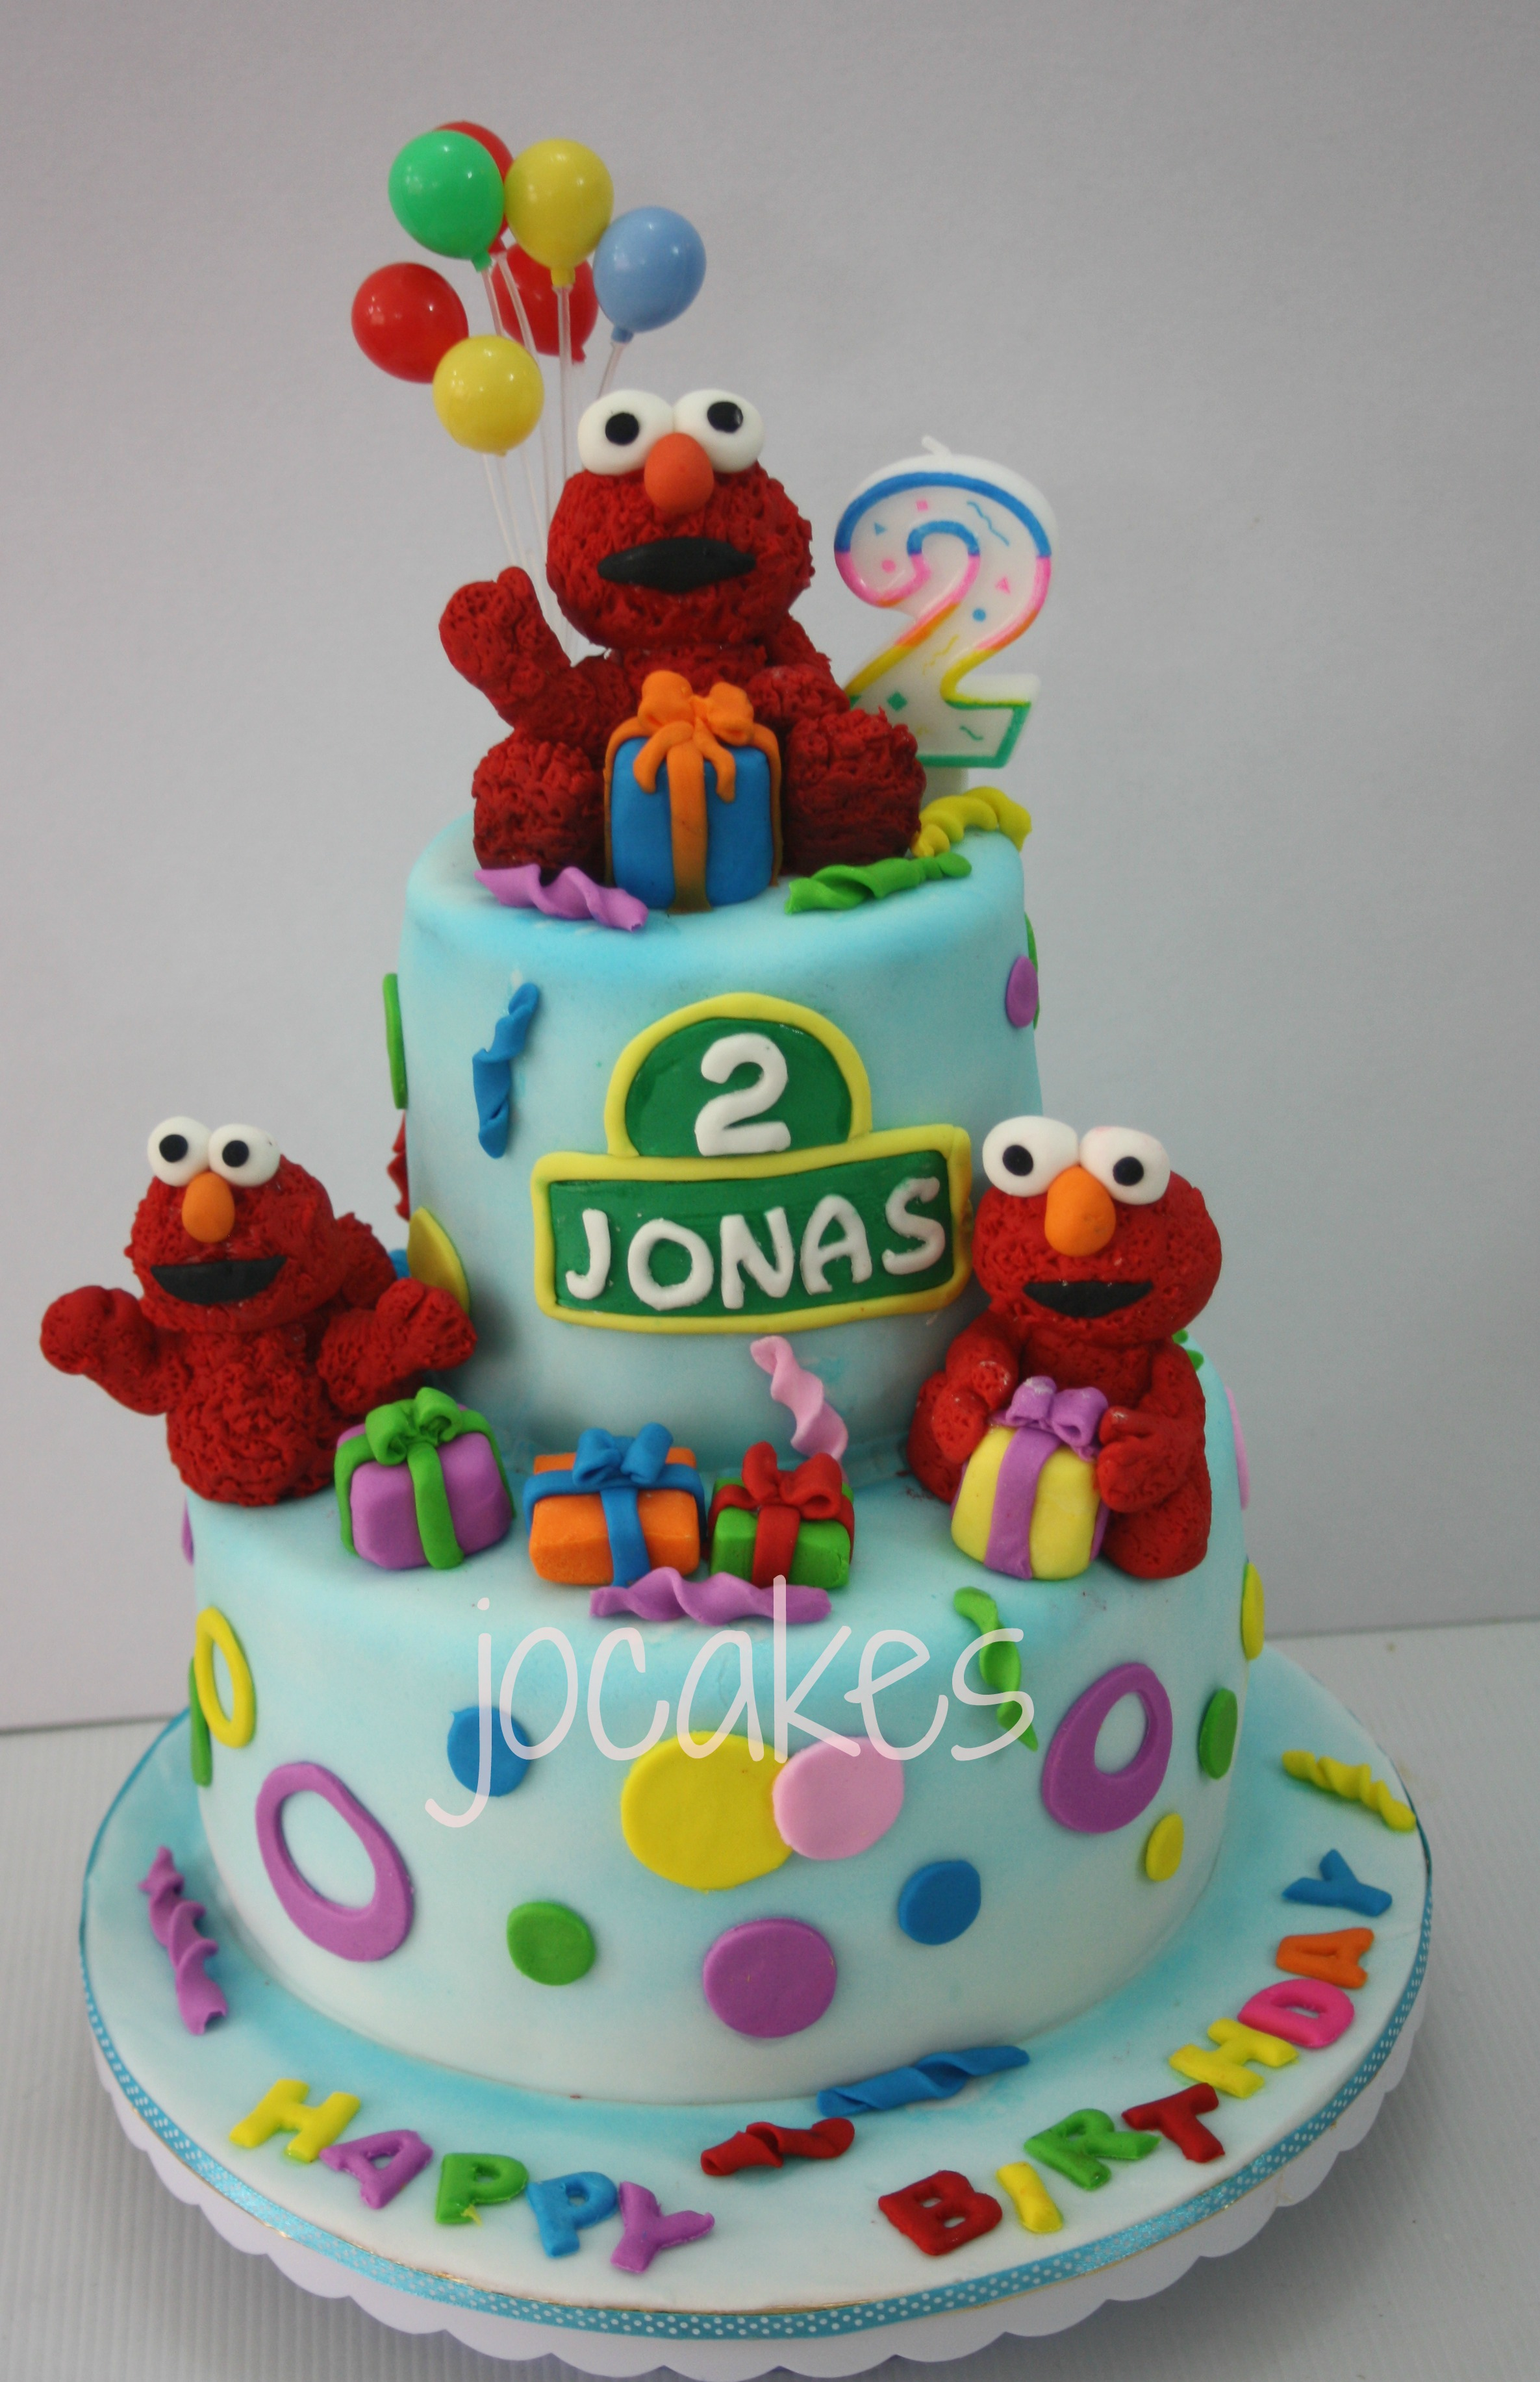 Pleasing 6 Elmo Birthday Cakes For 2 Year Old Boys Photo 2 Year Old Boy Funny Birthday Cards Online Elaedamsfinfo